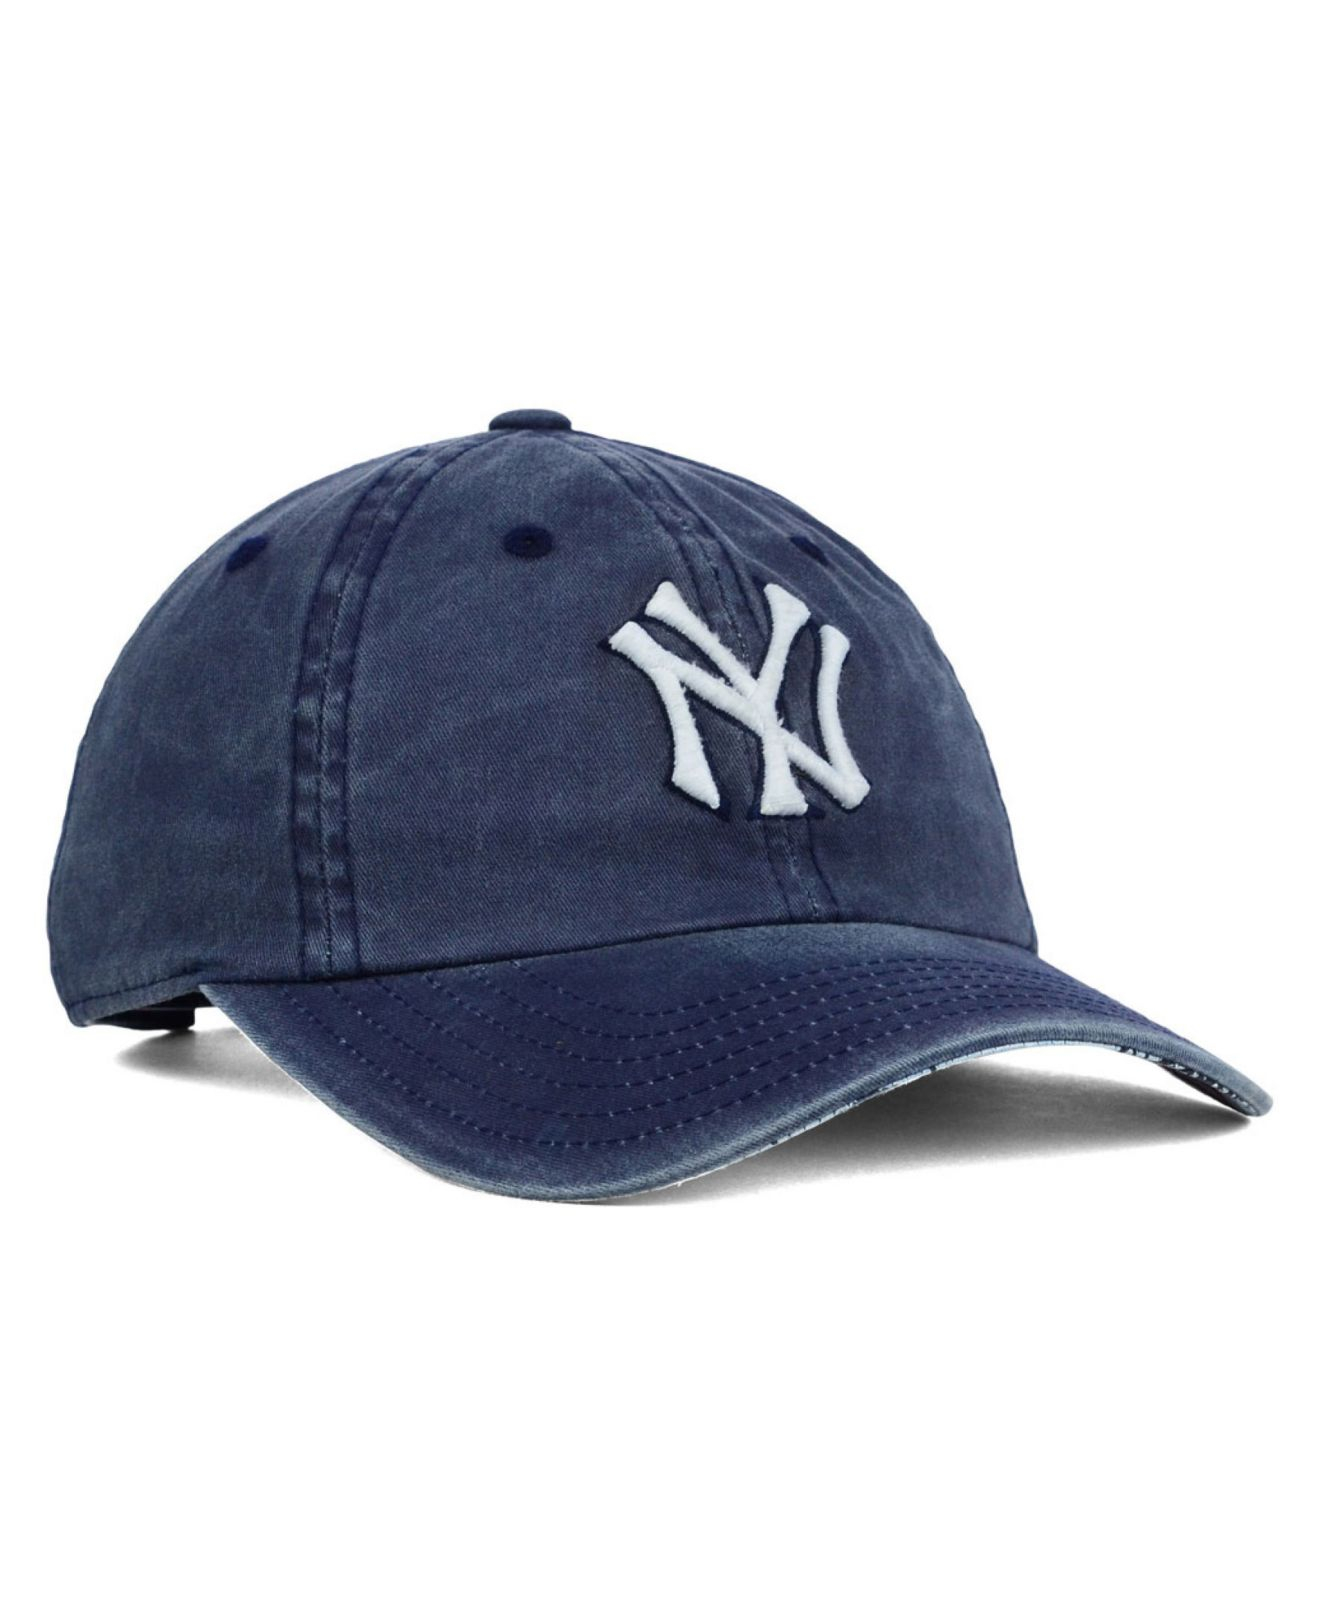 c99f03f8 ... cheap lyst american needle new york yankees new raglan cap in blue for  men 409d5 1f1a8